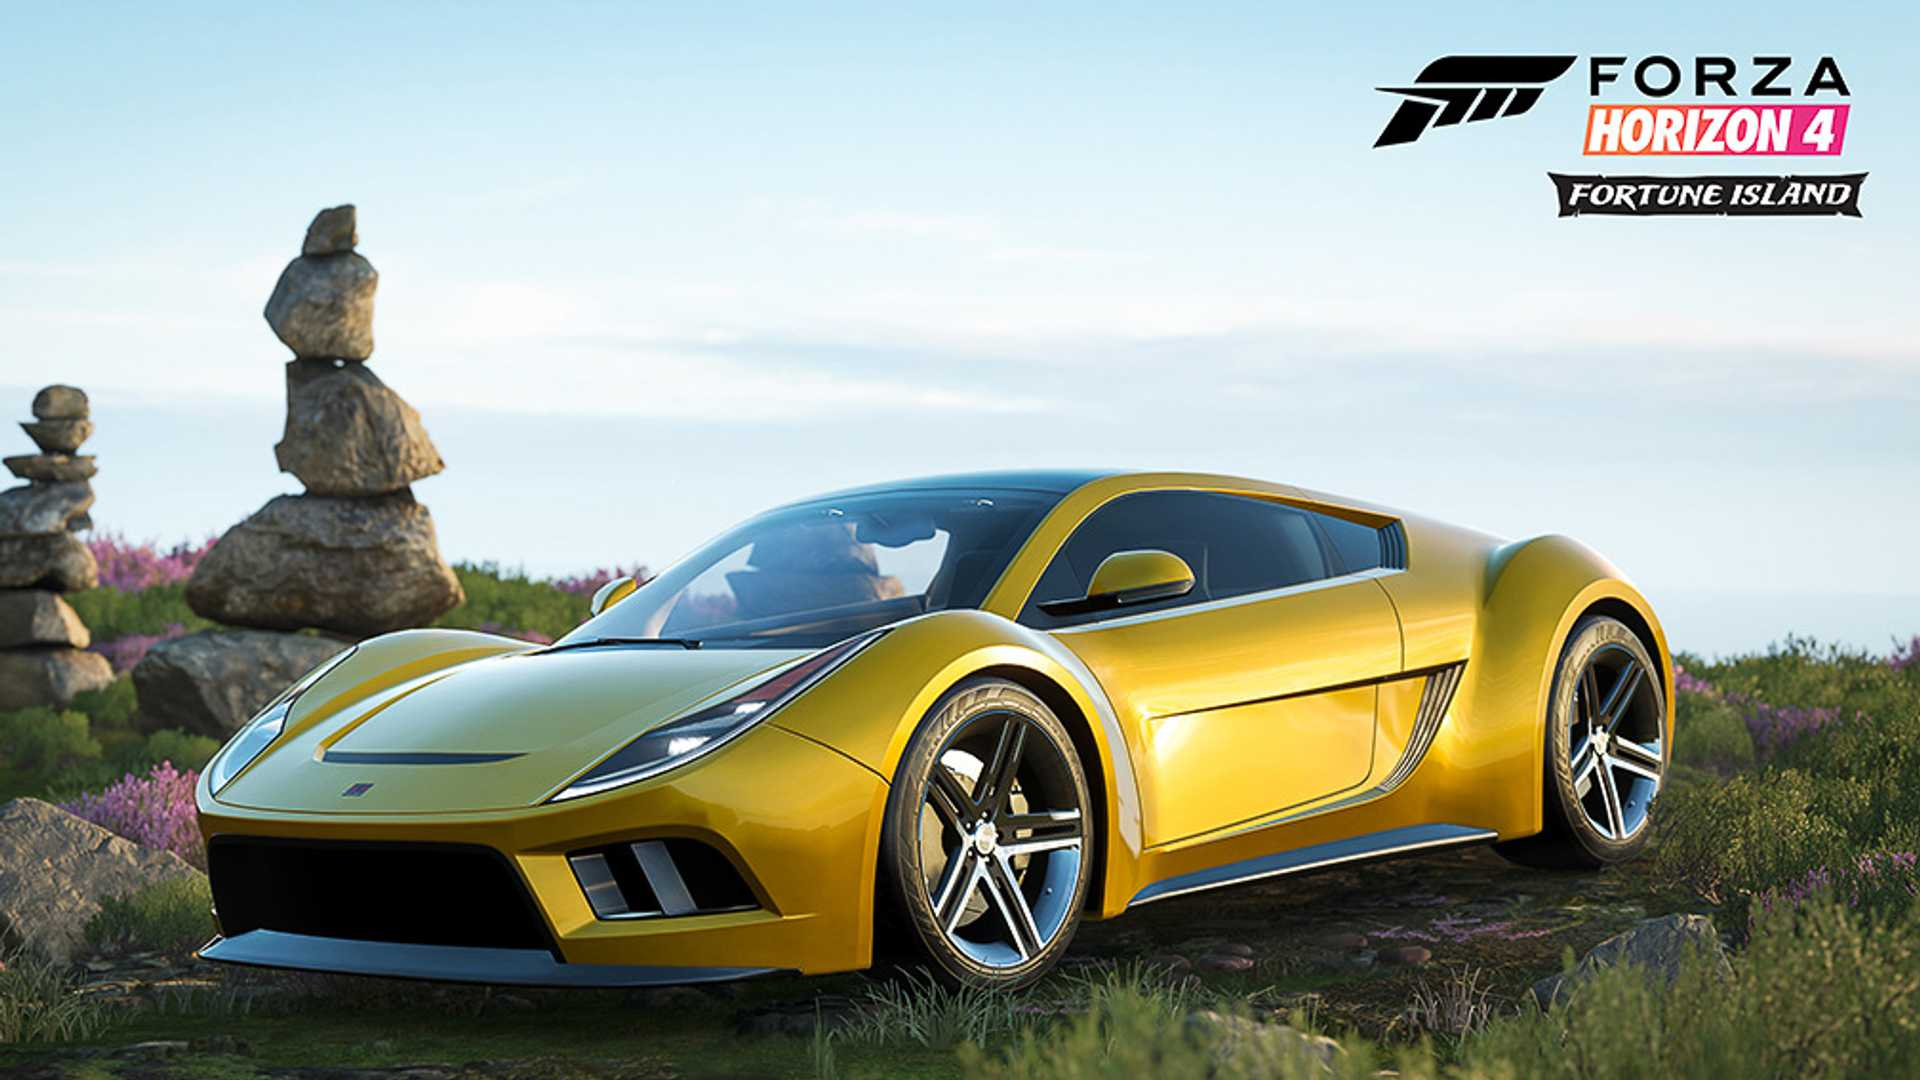 forza-horizon-4-fortune-island-expansion (8)